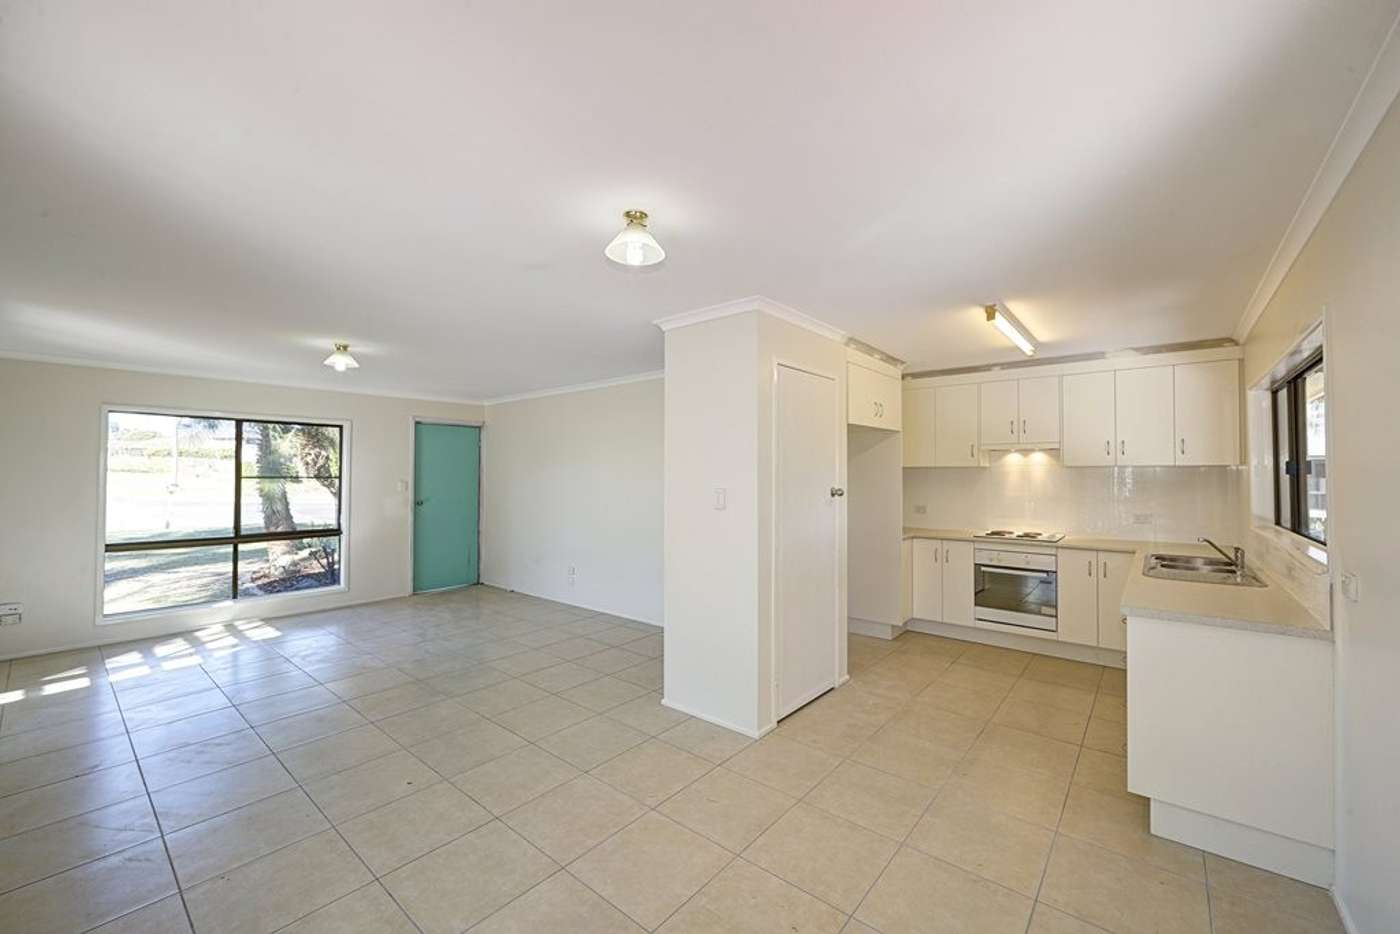 Sixth view of Homely house listing, 8 Bisdee Street, Coral Cove QLD 4670